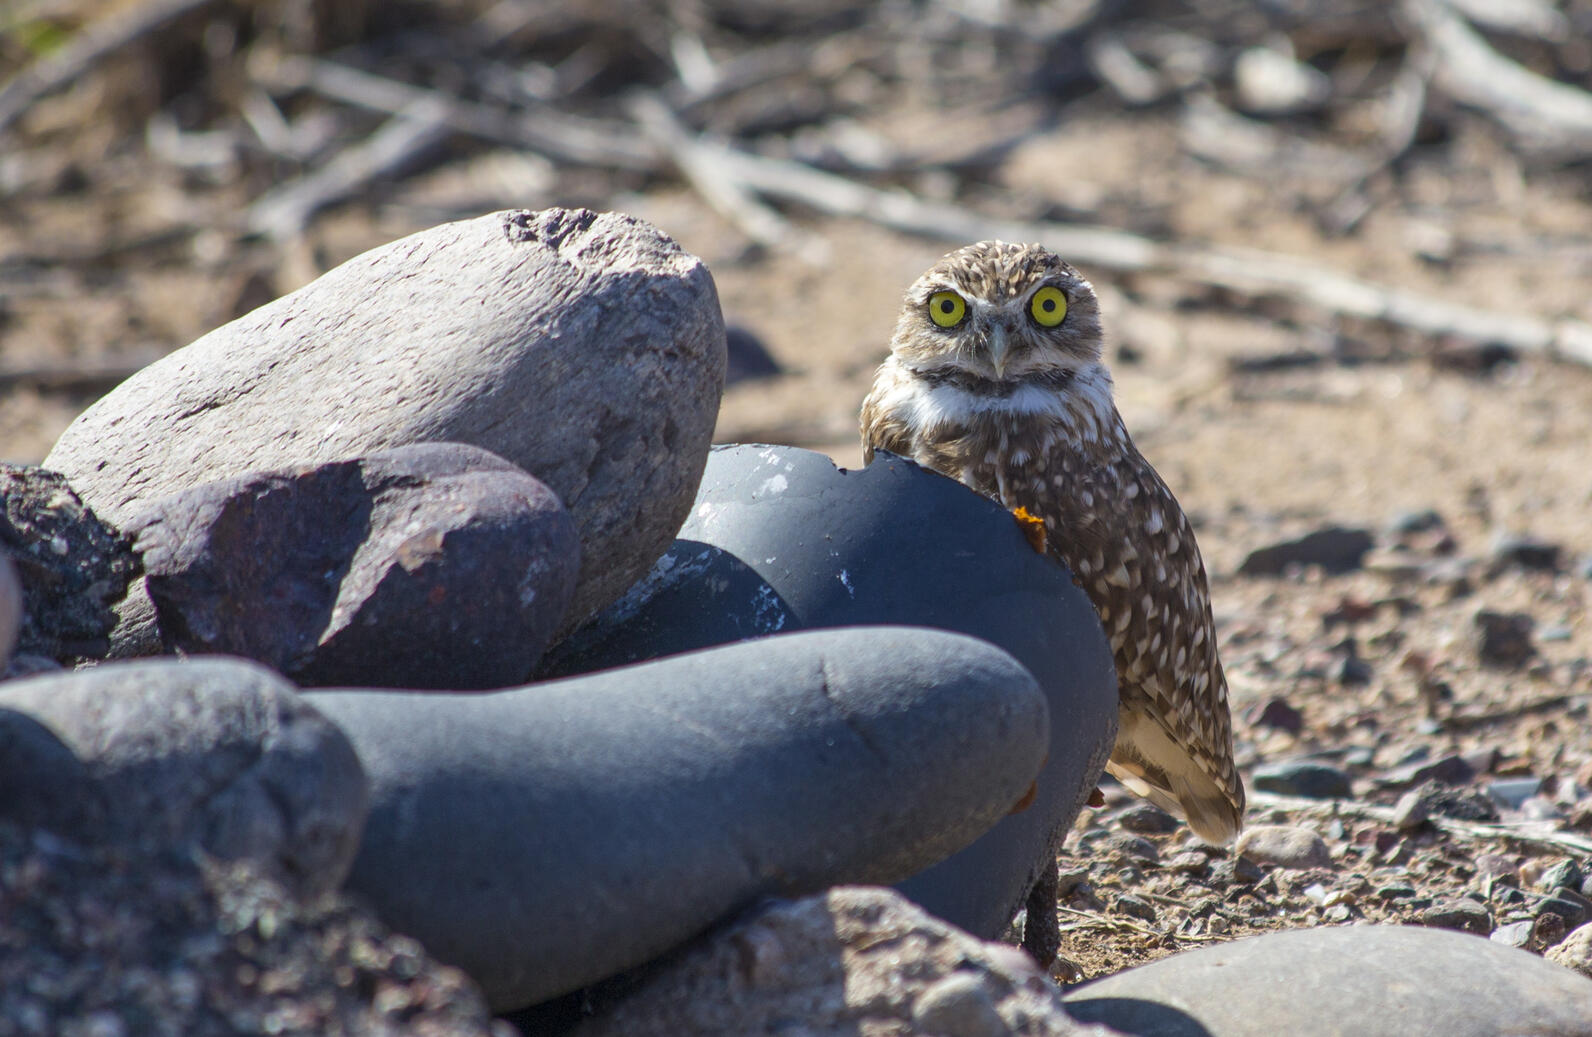 Burrowing Owl standing tall to peer over the mound of river rocks that covers its burrow.